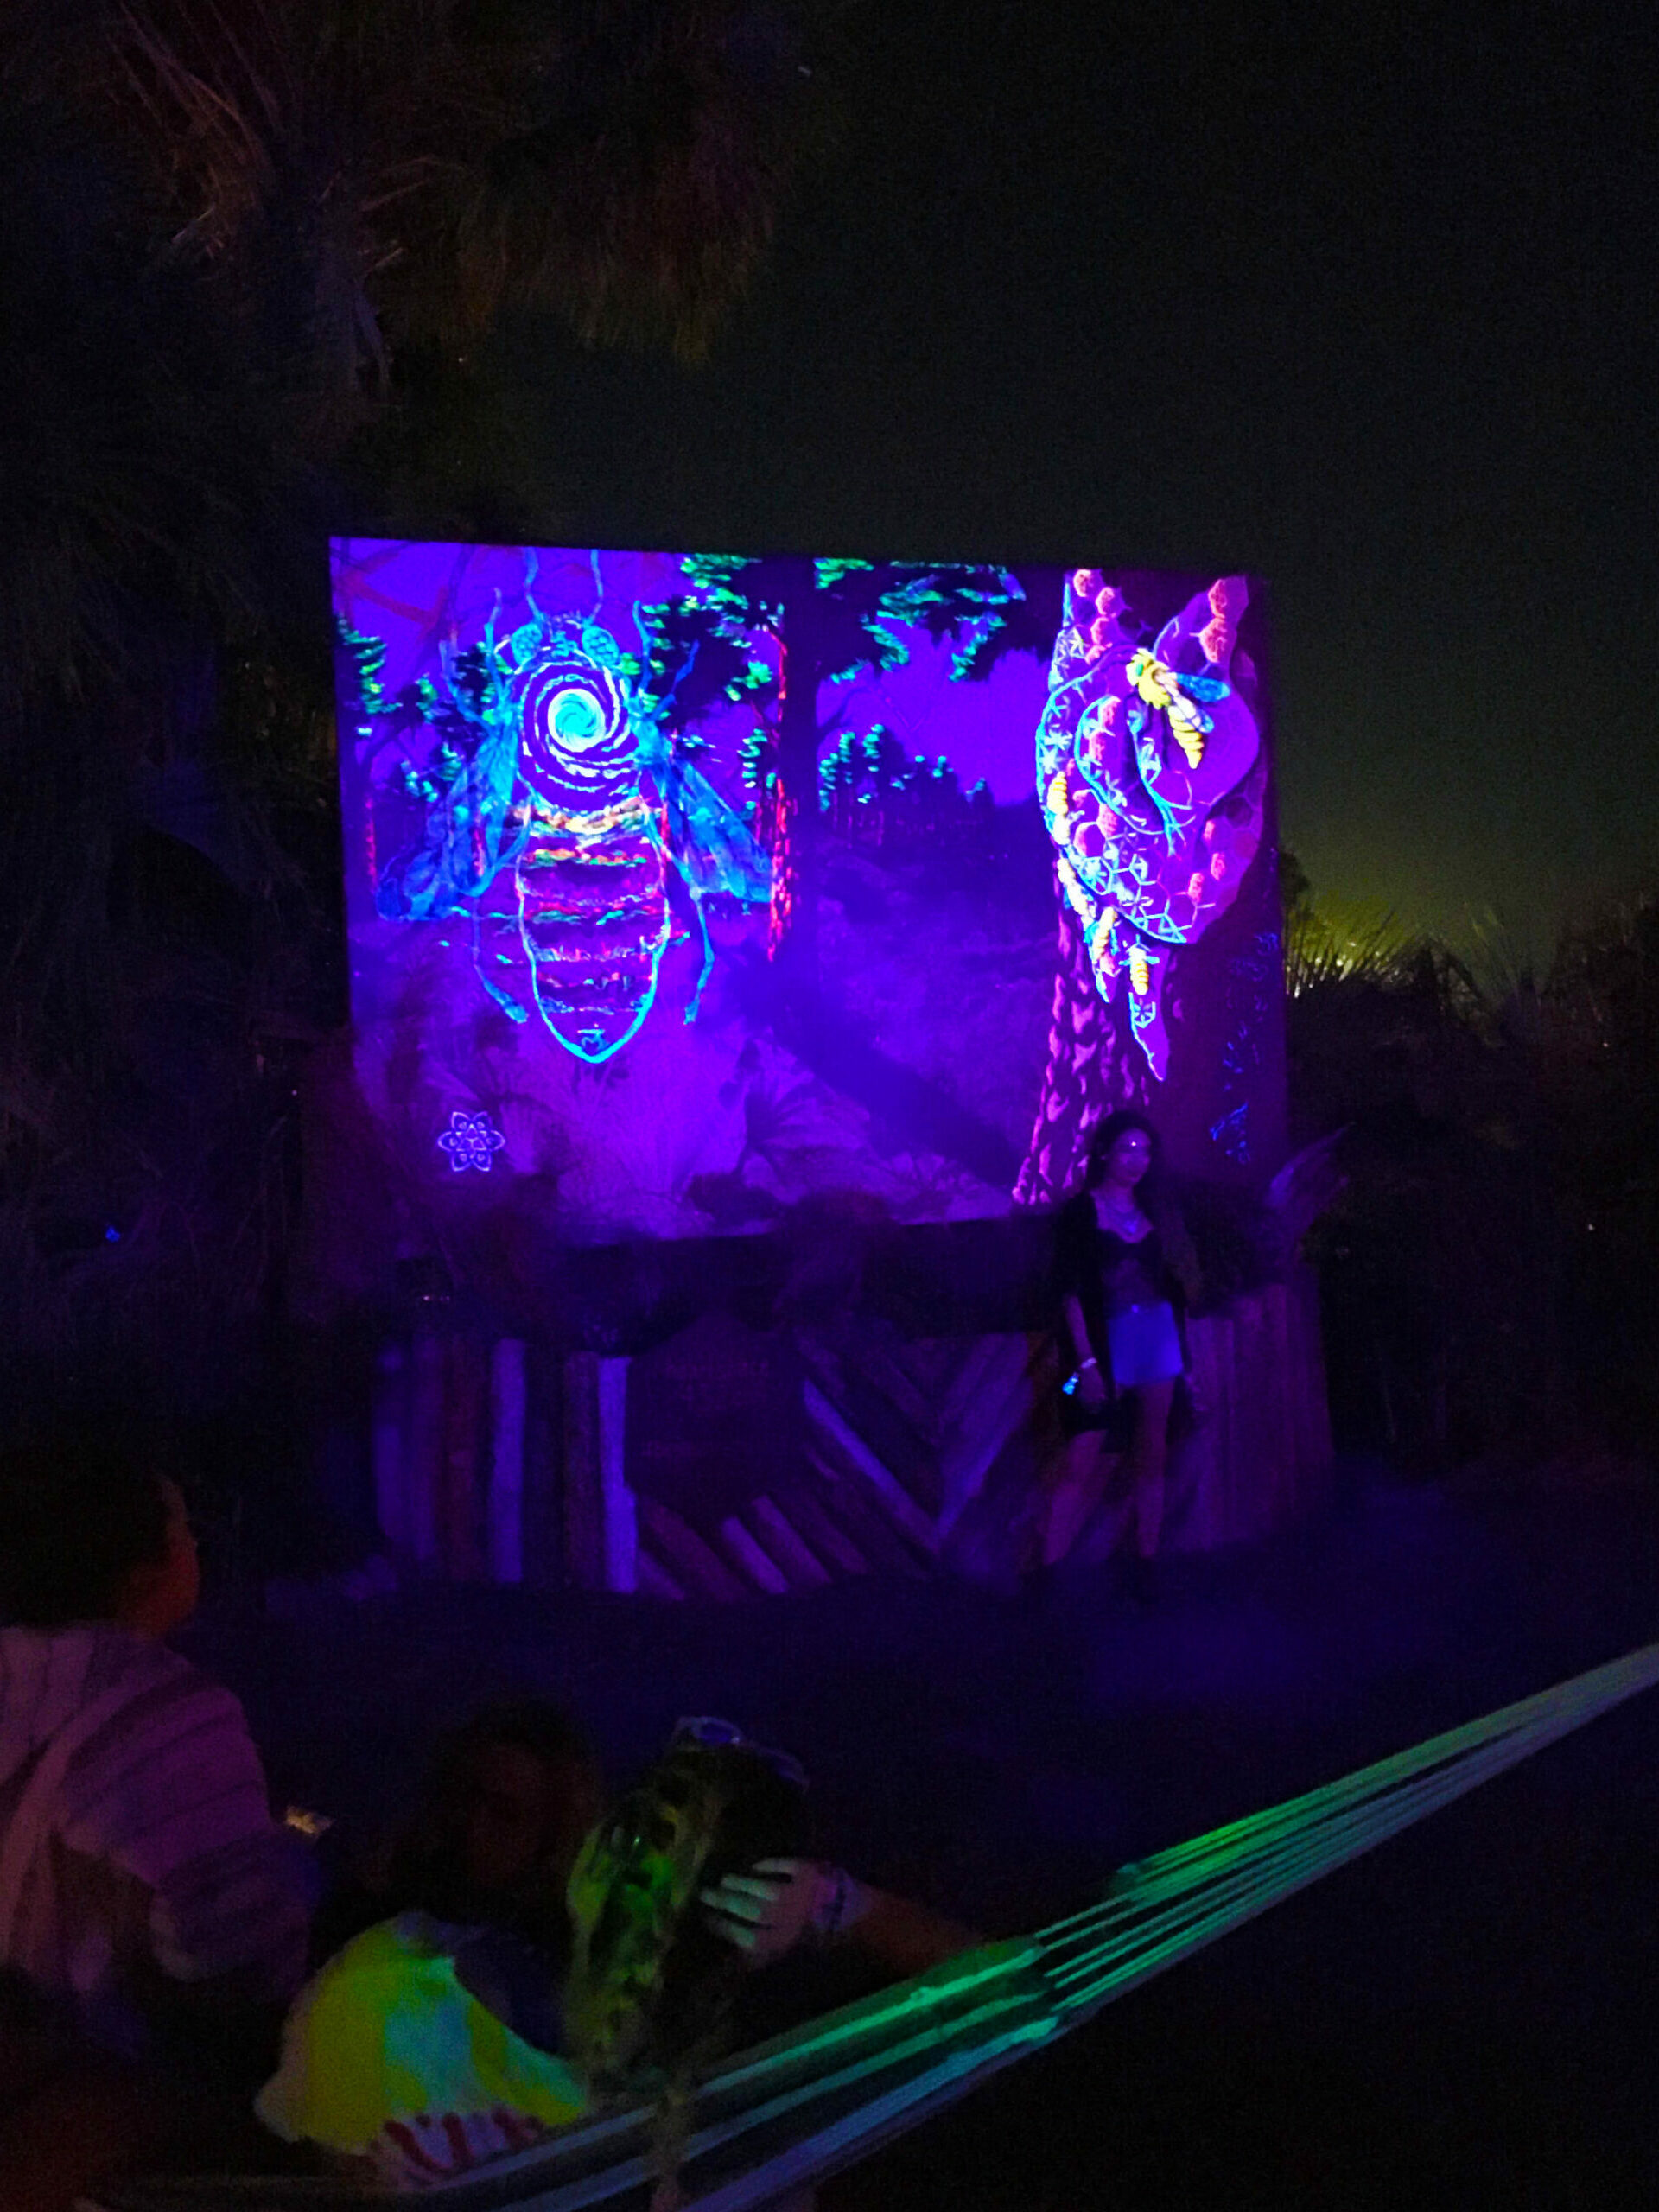 This image is the Bee Aware mural under UV lights. The lights reveal elements hidden in the painting under normal lighting. This Mural was installed at the Okeechobee music festival.